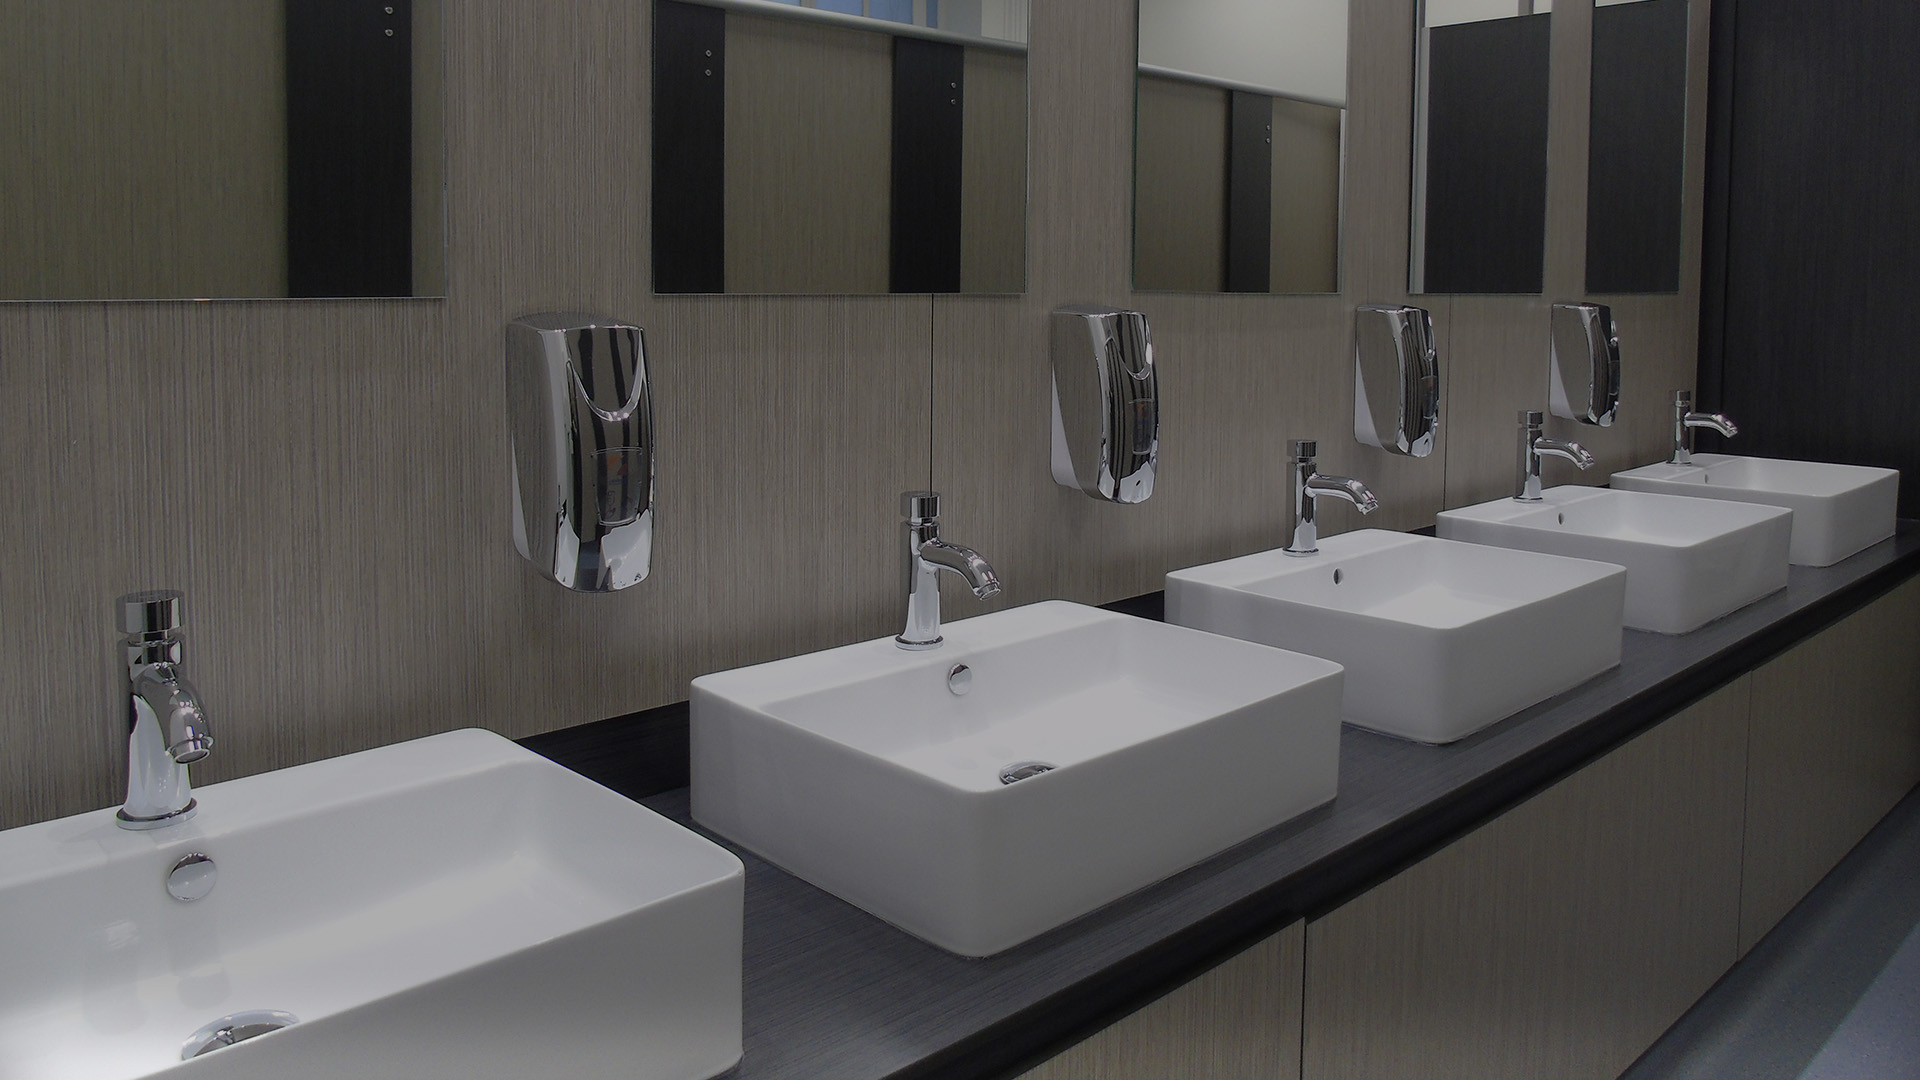 Stevens Washrooms - Commercial Washrooms Cubicles Urinals Installation Refurbishment - London Nationwide